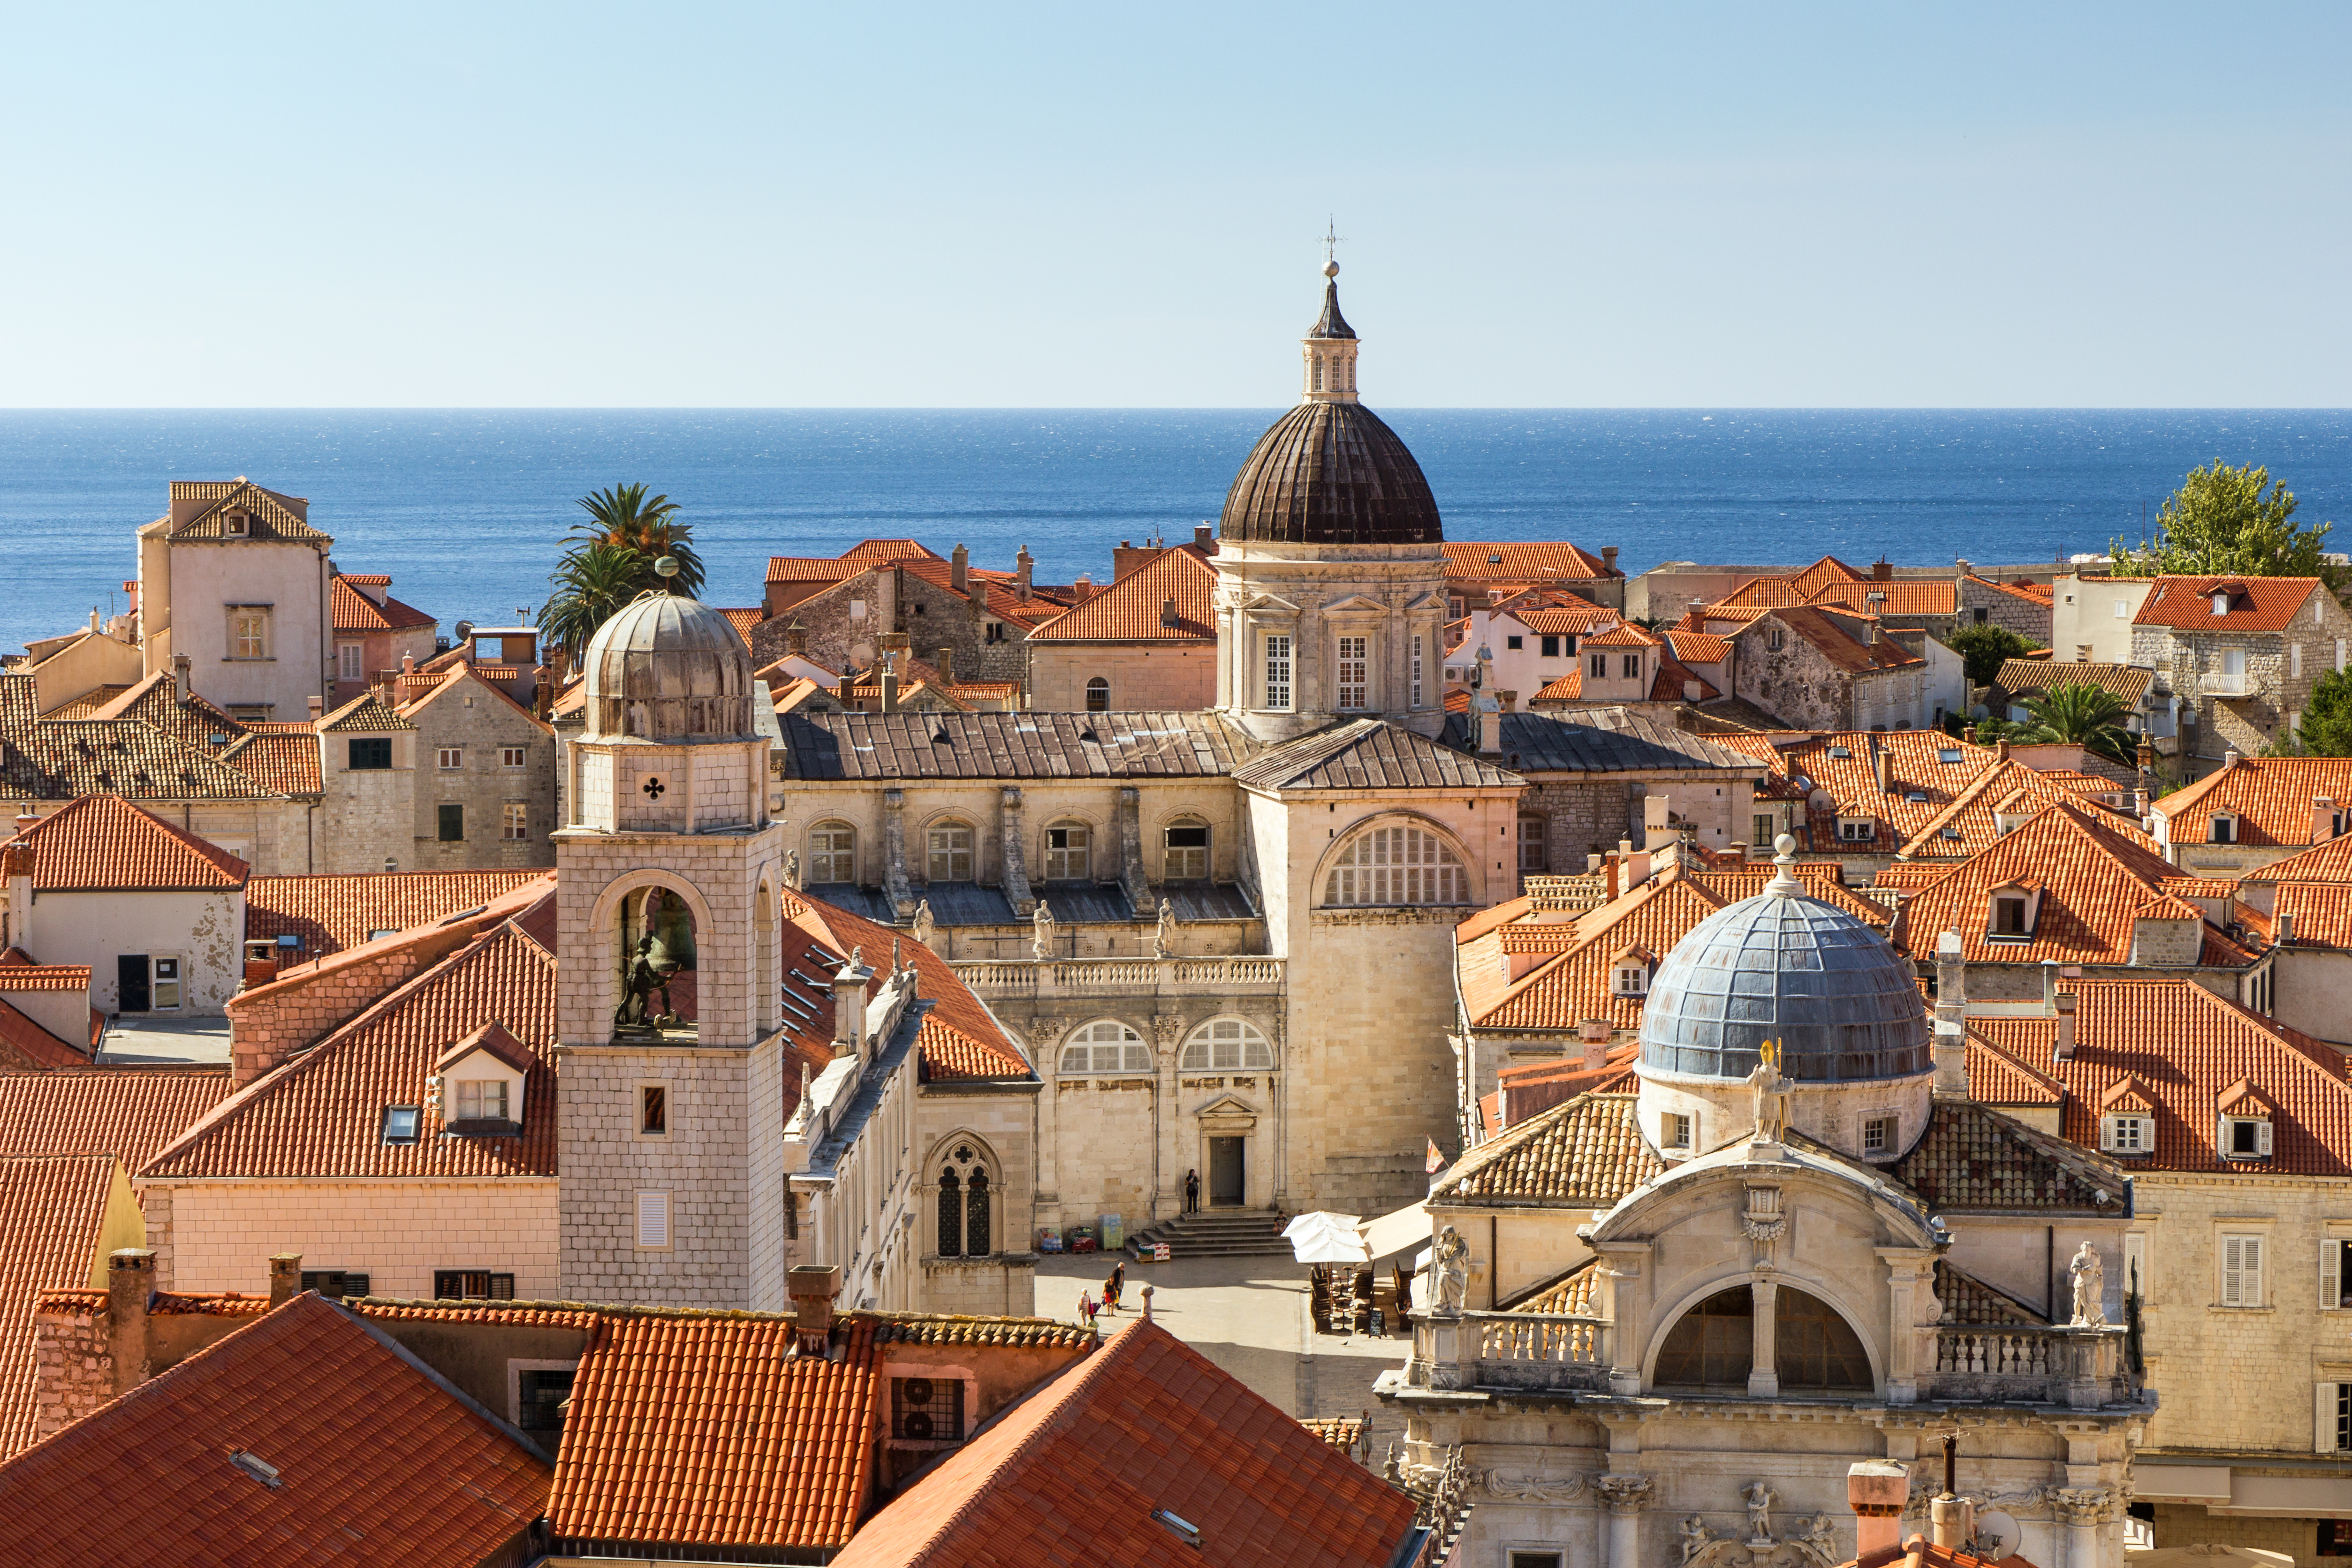 Old Town's skyline with red roofs and churches' and cathedrals' towers in Dubrovnik, Croatia, viewed slightly from above.